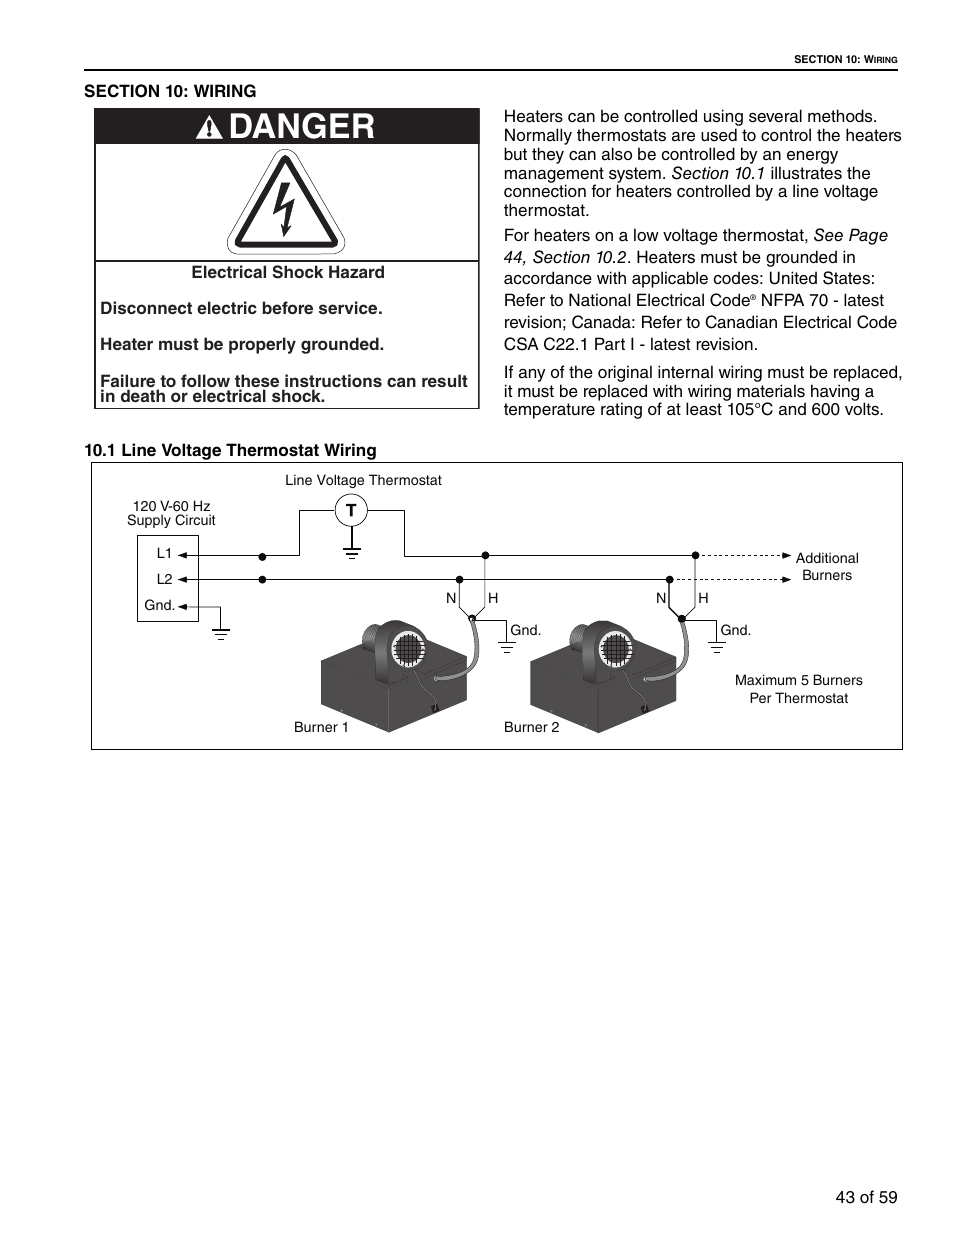 medium resolution of section 10 wiring 1 line voltage thermostat wiring danger roberts gorden gordonray bh bh 40 user manual page 49 70